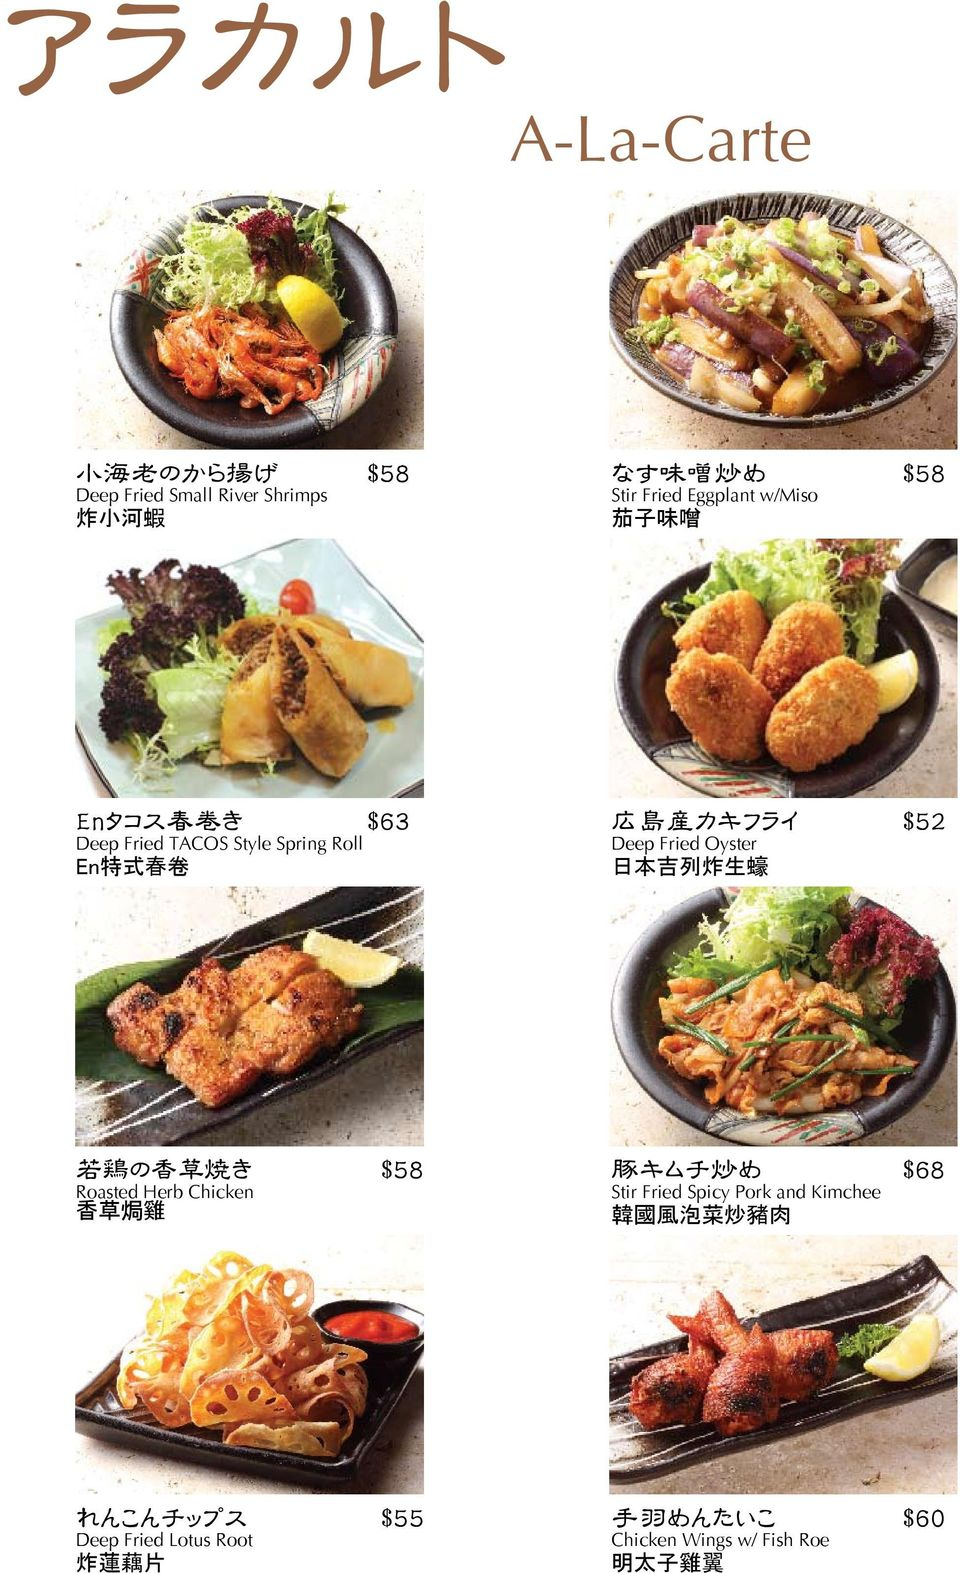 Oyster 日 本 吉 列 炸 生 蠔 若 鶏 の 香 草 焼 き $58 Roasted Herb Chicken 香 草 焗 雞 豚 キムチ 炒 め $68 Stir Fried Spicy Pork and